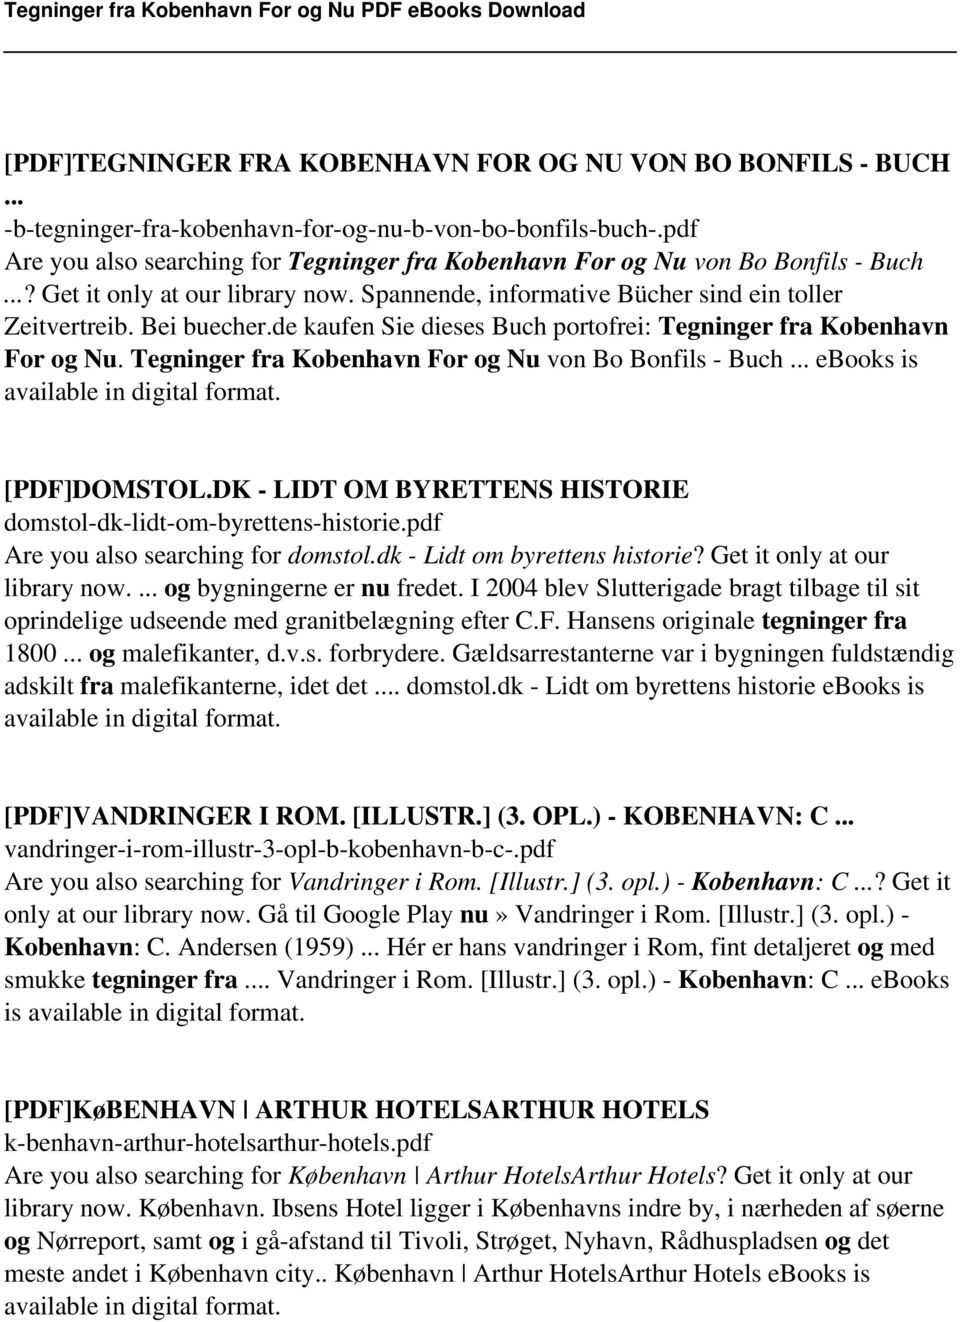 de kaufen Sie dieses Buch portofrei: Tegninger fra Kobenhavn For og Nu. Tegninger fra Kobenhavn For og Nu von Bo Bonfils - Buch... ebooks is available in digital format. [PDF]DOMSTOL.